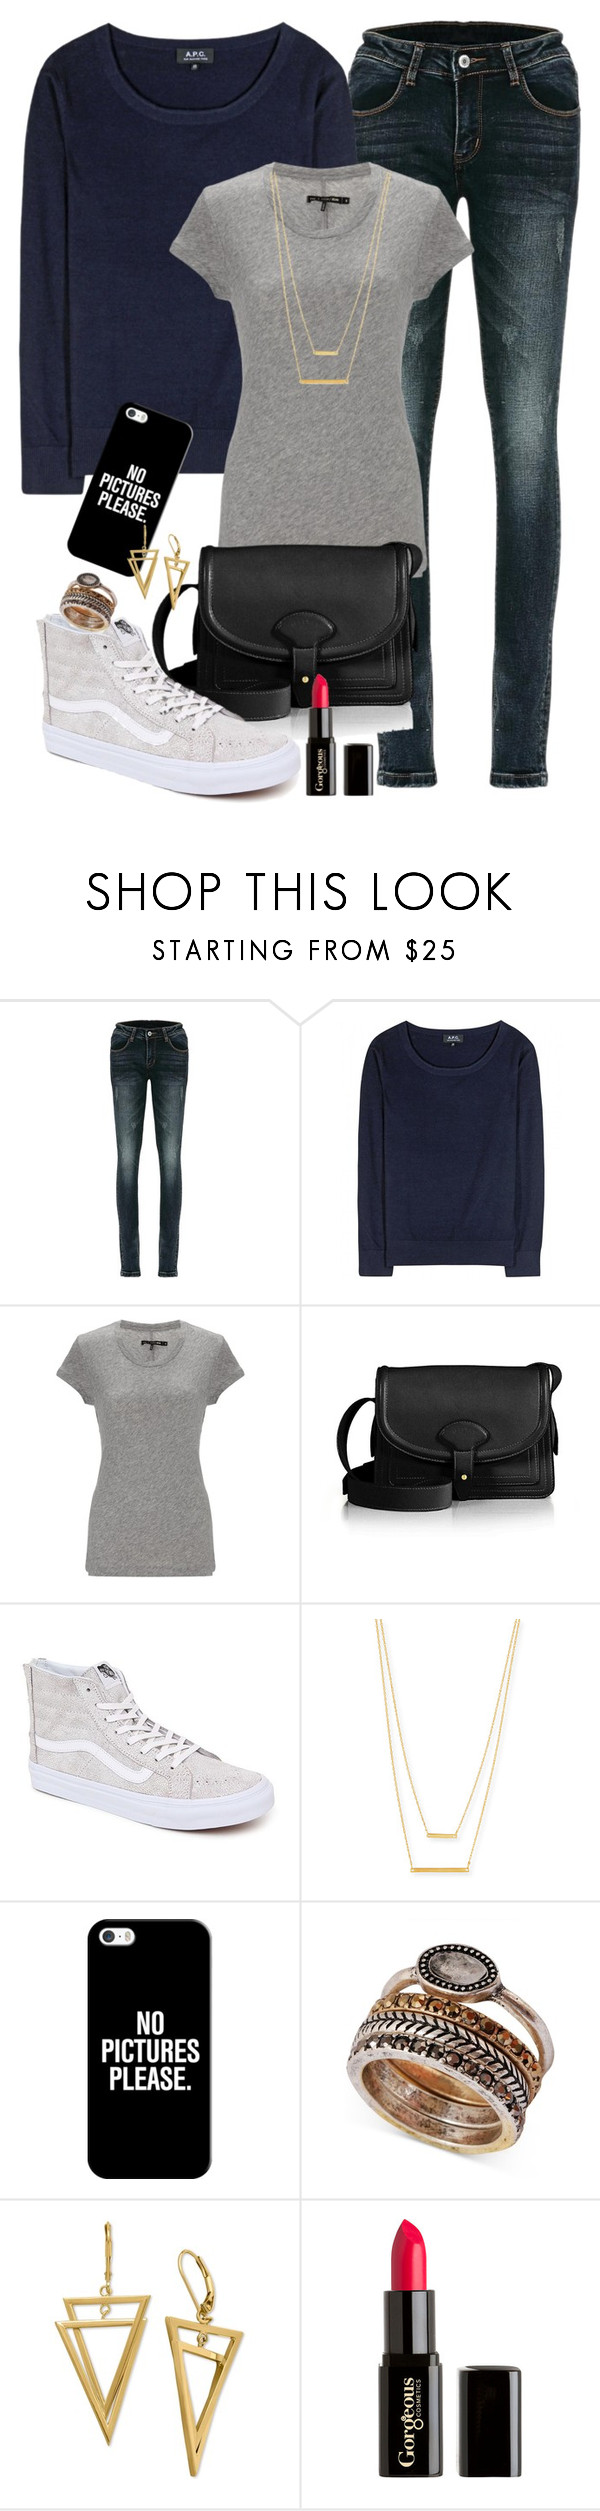 """""""Young Peter Hale"""" by nuria-bremer ❤ liked on Polyvore featuring A.P.C., rag & bone, Maiyet, Vans, Jennifer Zeuner, Casetify, Lucky Brand and Gorgeous Cosmetics"""